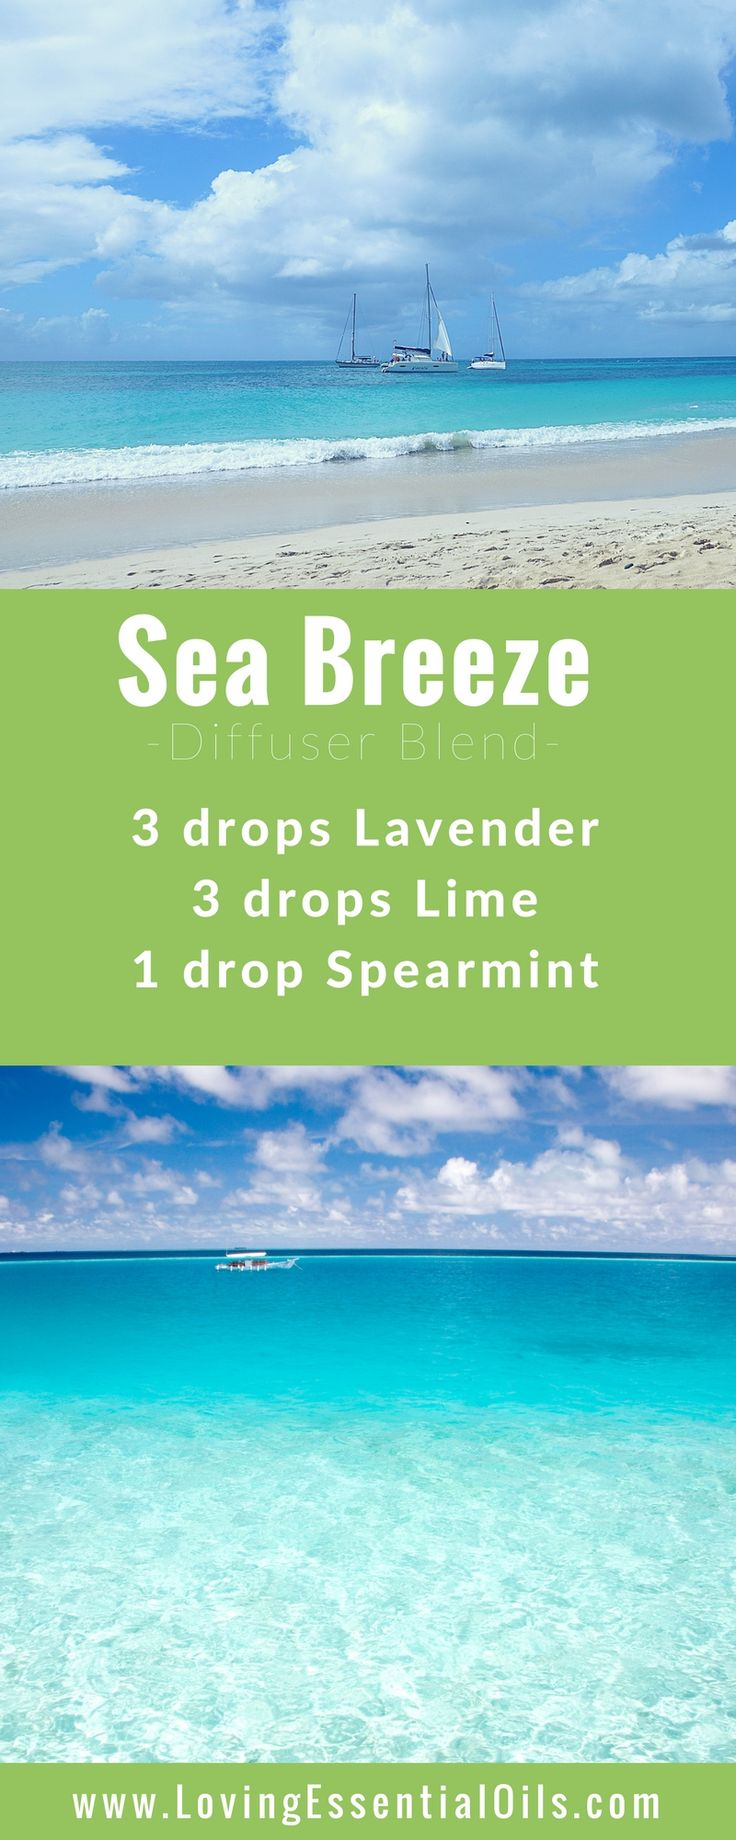 FREE GUIDE: 150 Essential Oil Diffuser Recipes You Will Love - Sea Breeze Diffuser Blend with lavender, lime and spearmint essential oils, happy diffusing! #diffuserguide #diffusingoils #diffuserblends